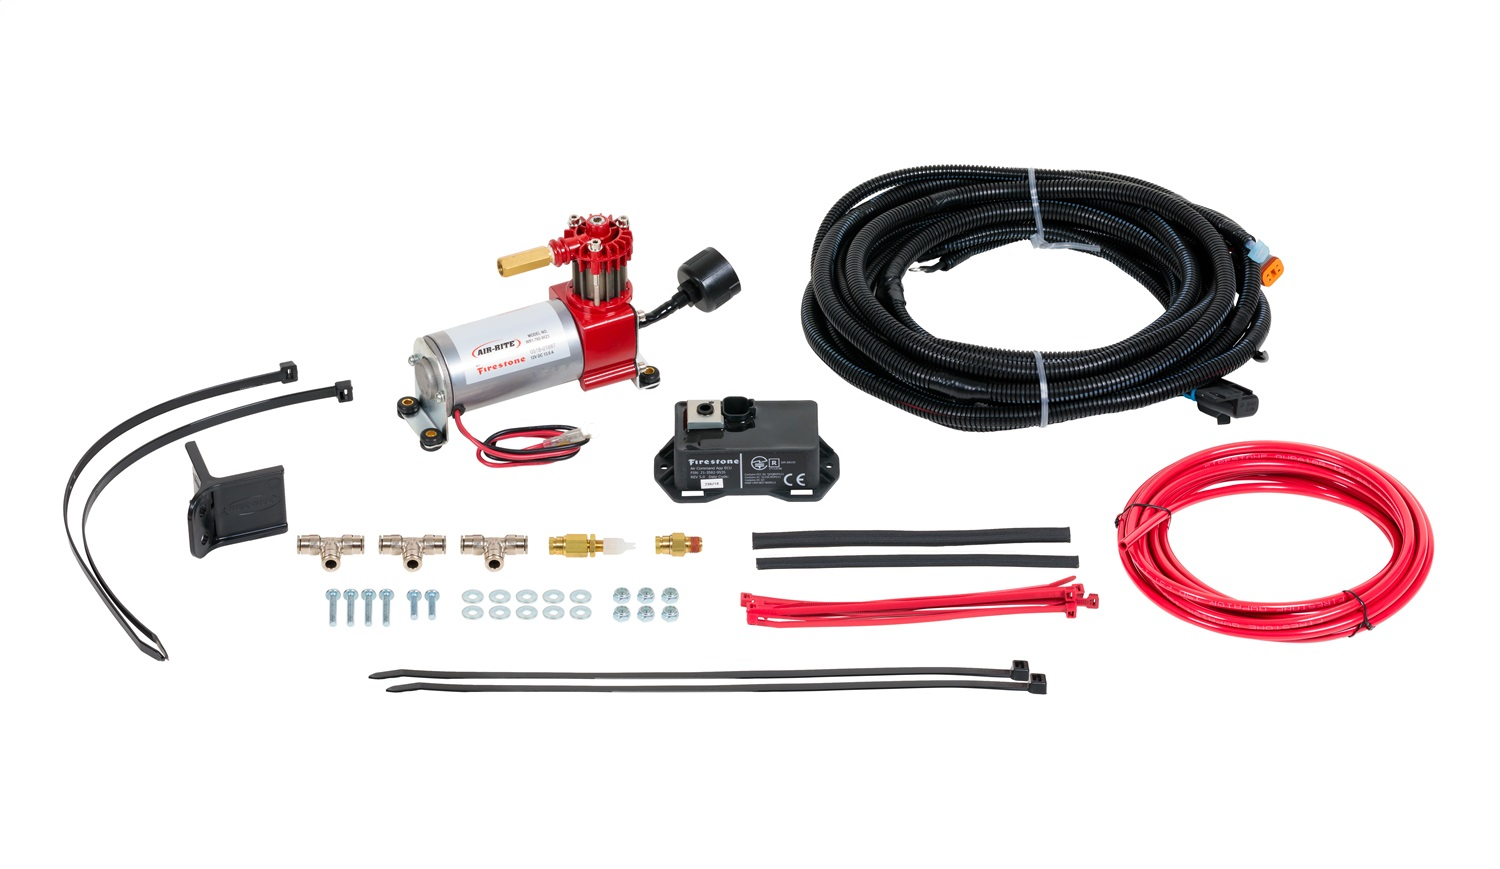 Wireless Air Command Kit, w/App, Can Be Download From Google Play Or Apple Store, Incl. Air Compressor/Controller/Wire Harness/Air Line/Fittings/And Hardware